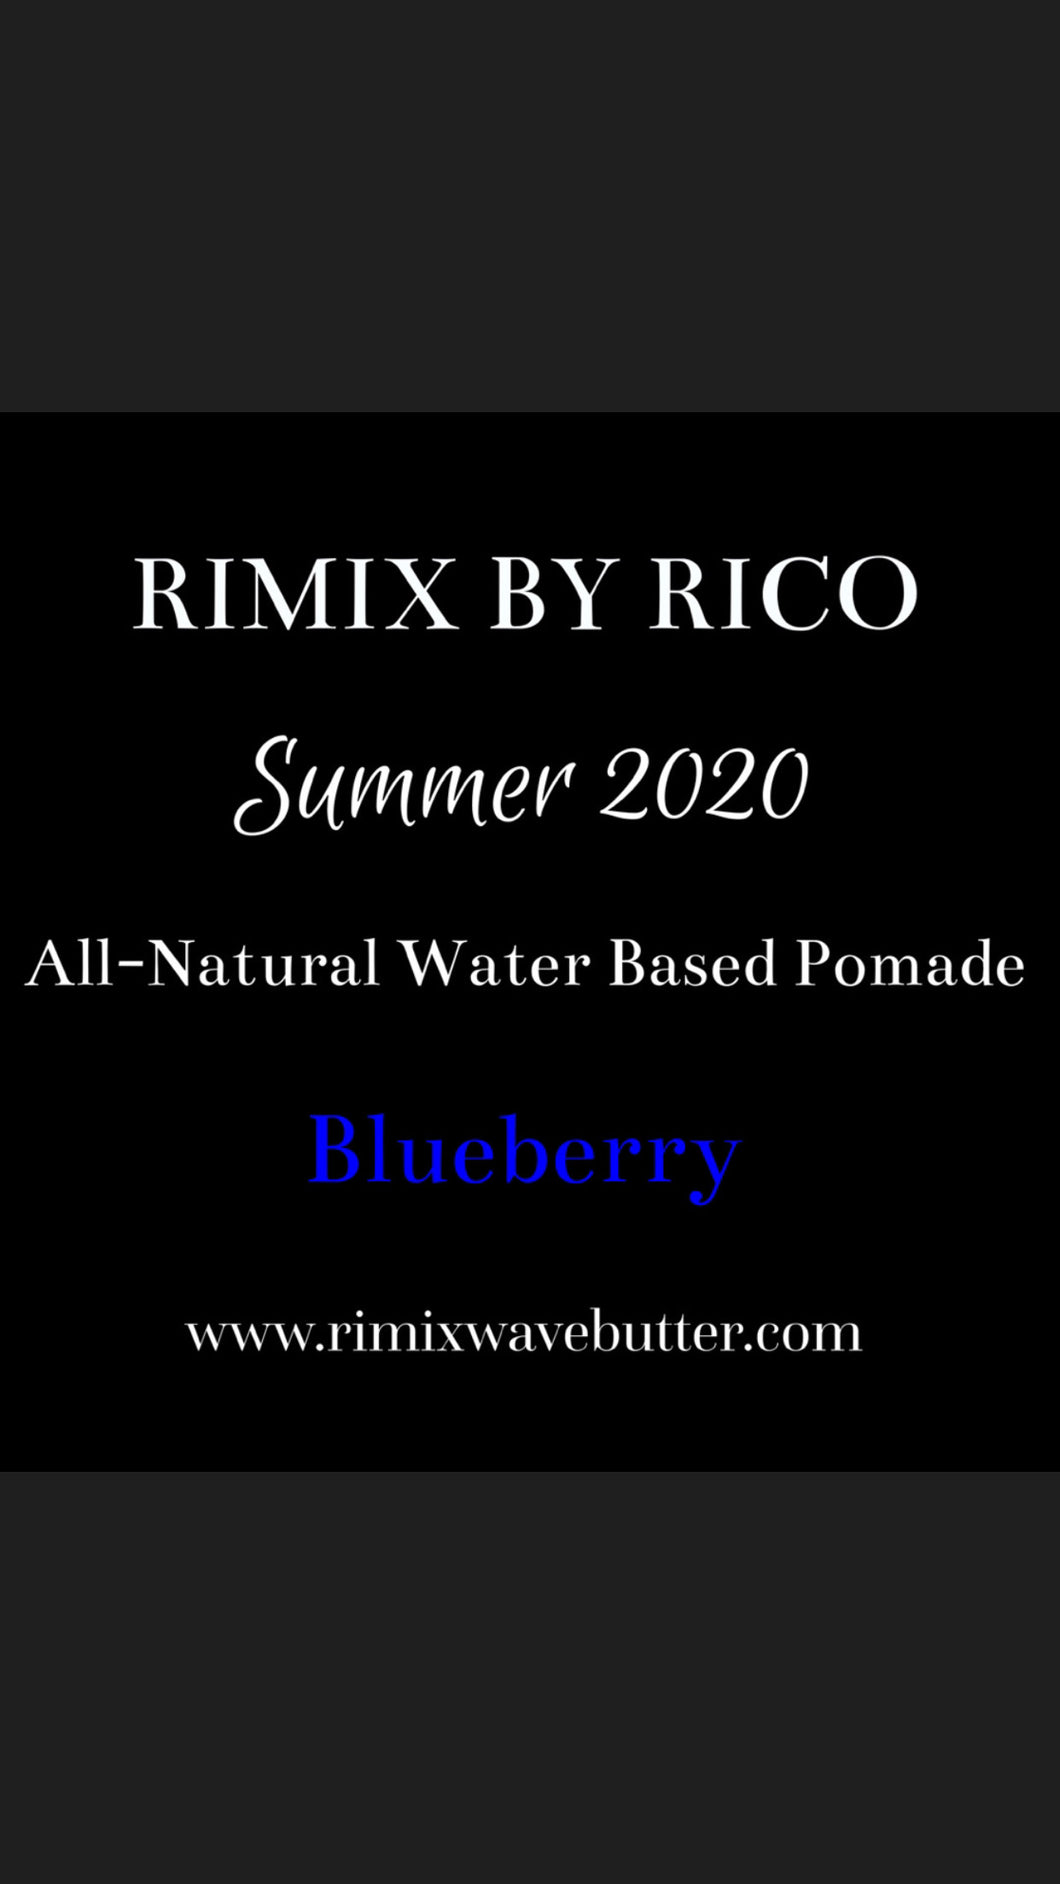 Rimix All-Natural Water Based Pomade**Blueberry**SUMMER 2020 Limited Edition